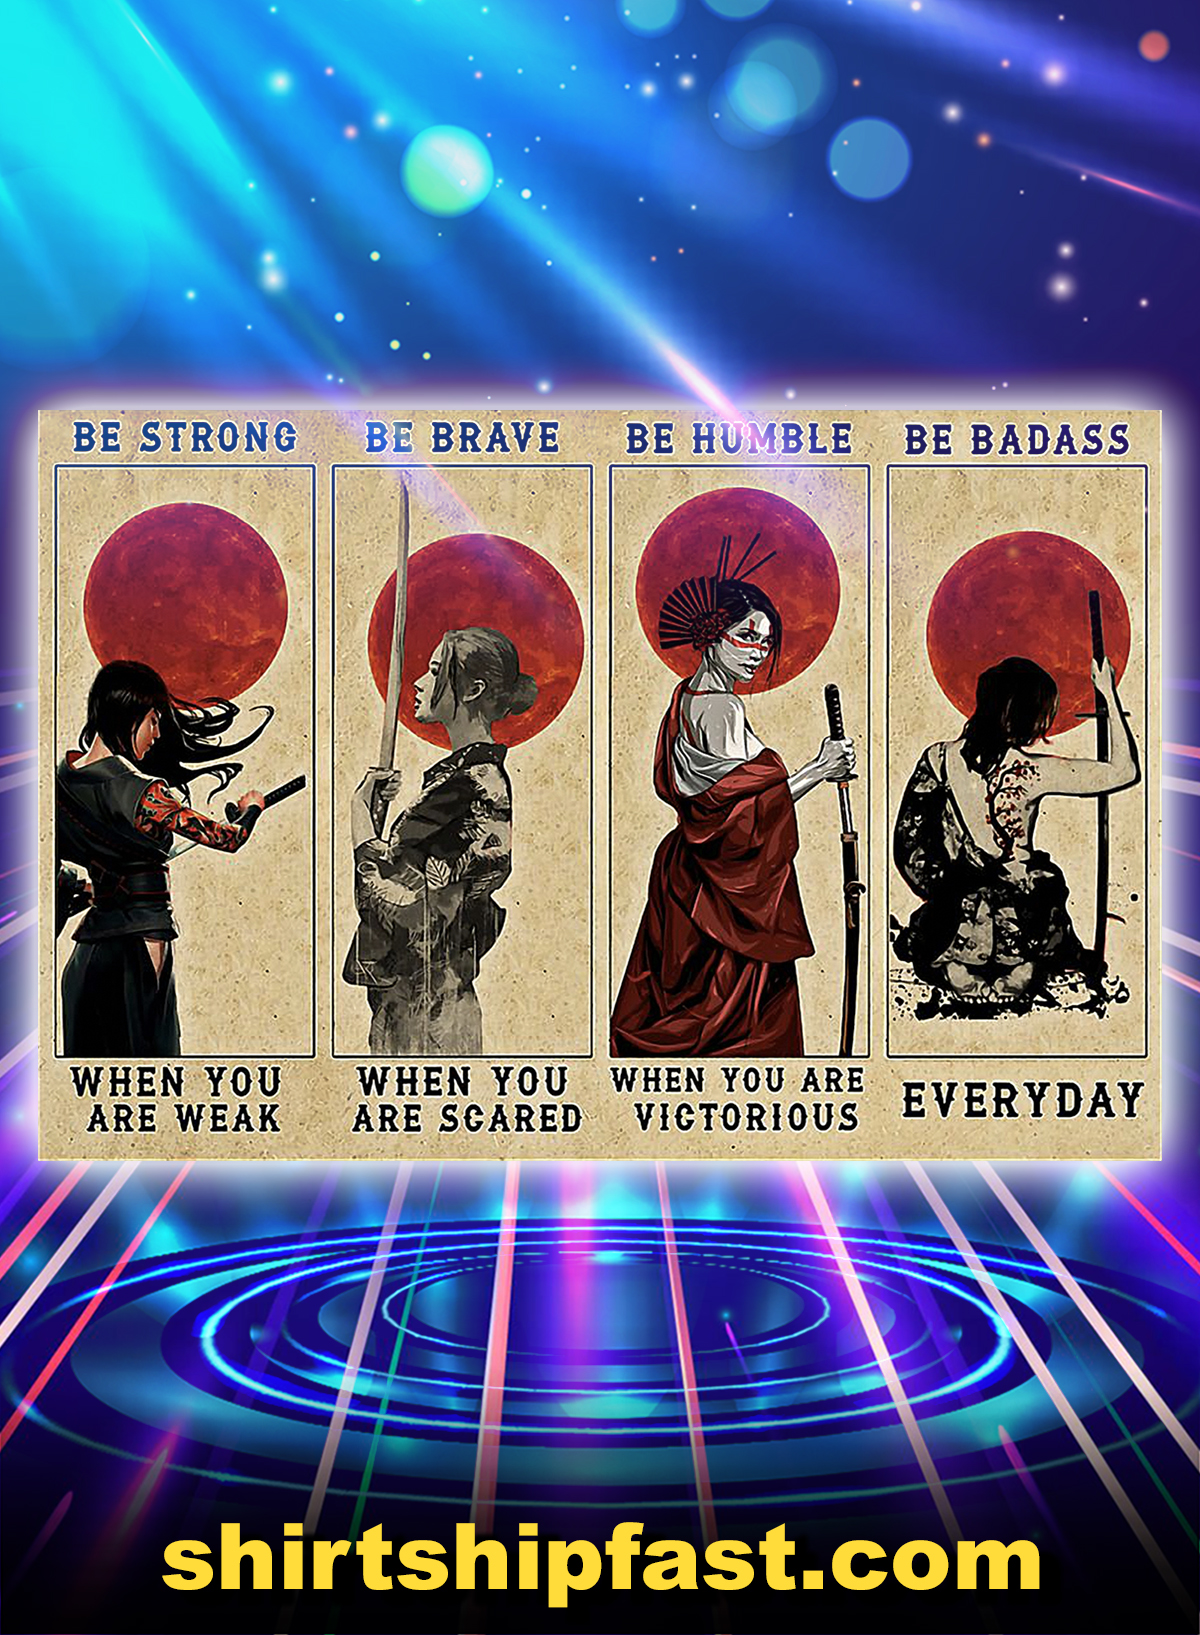 Female samurai be strong be brave be humble be badass poster - A4